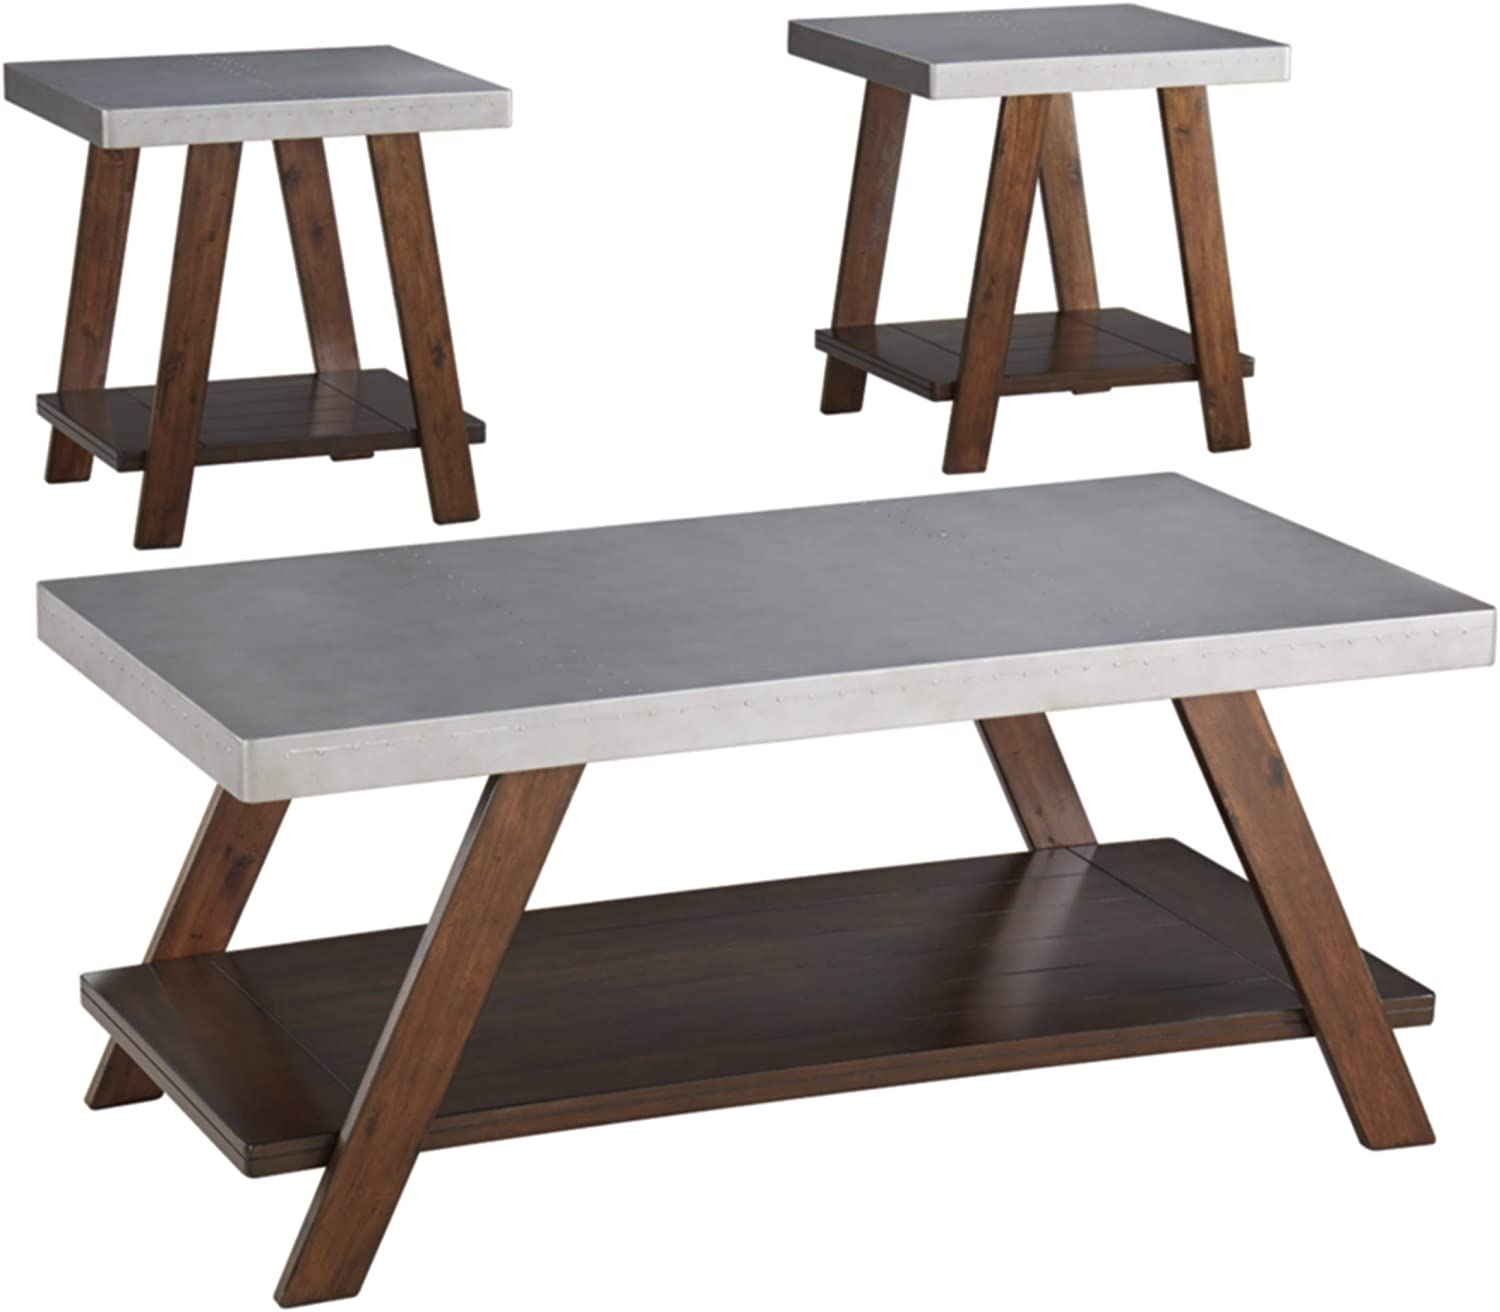 Signature Design Max 69% OFF by Ashley - Table Casual Bellenteen 3-Piece Set Ranking TOP13